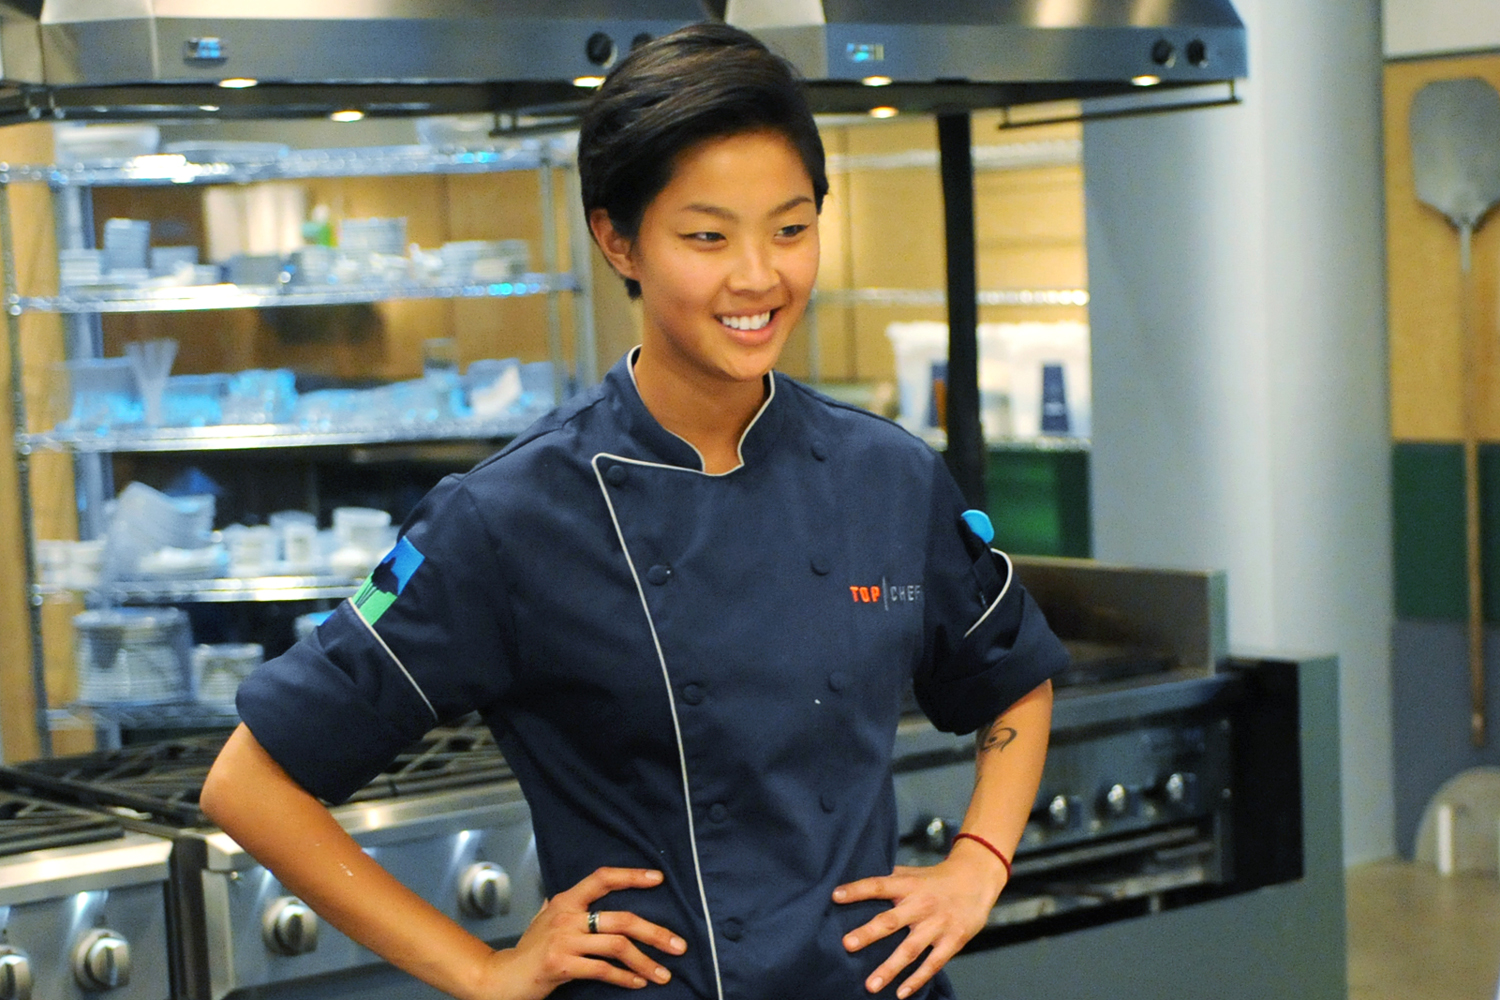 Kristen Kish Winning Top Chef